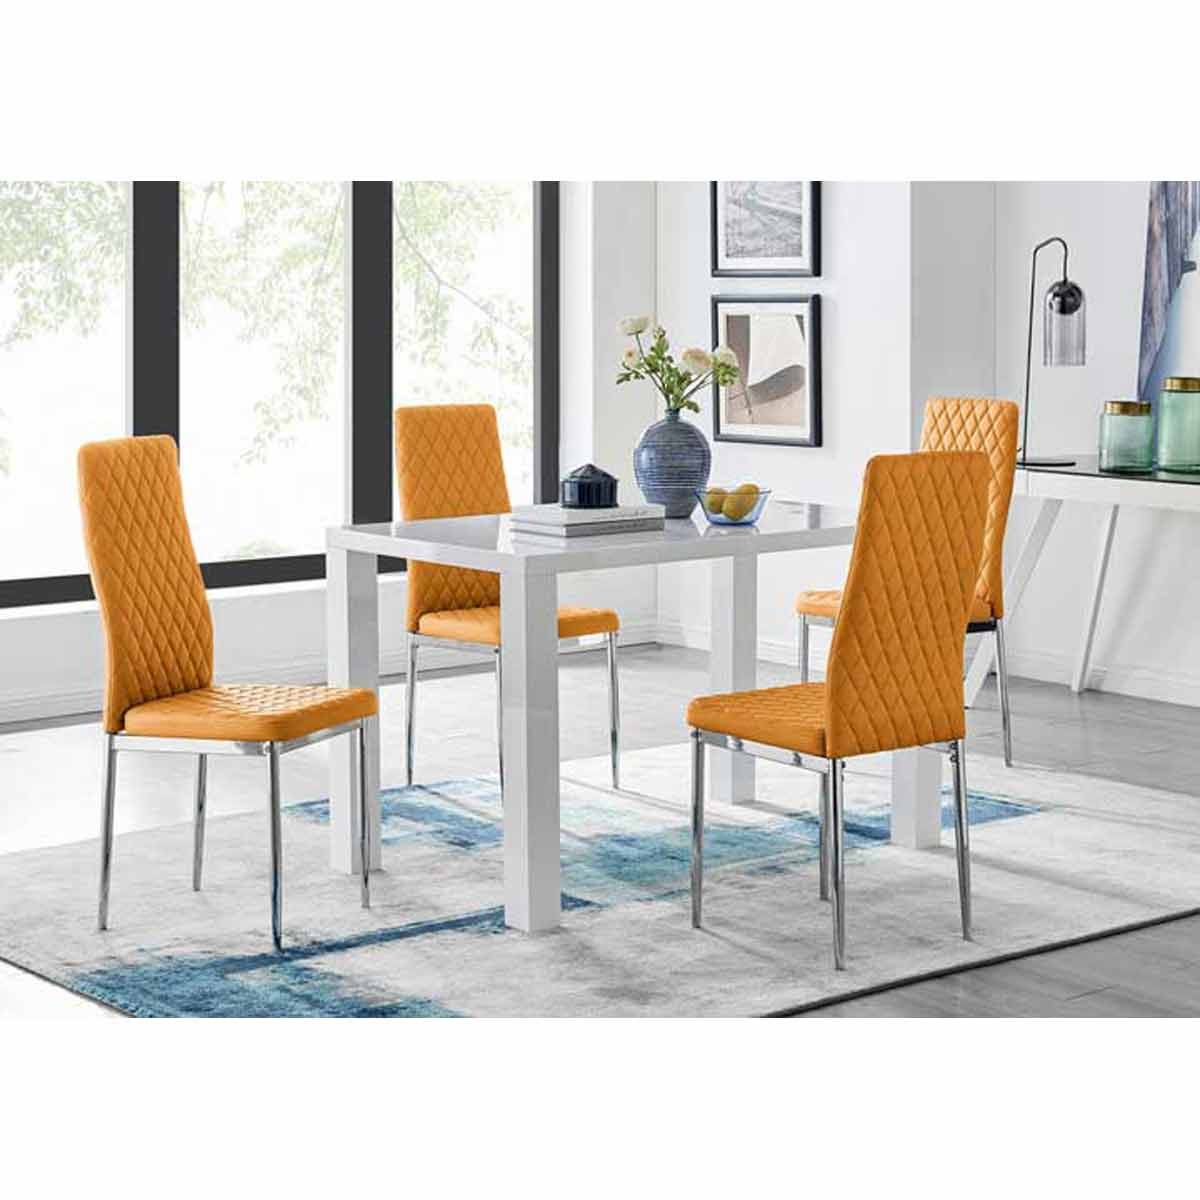 Furniture Box Pivero White High Gloss Dining Table and 4 Mustard Milan Chairs Set